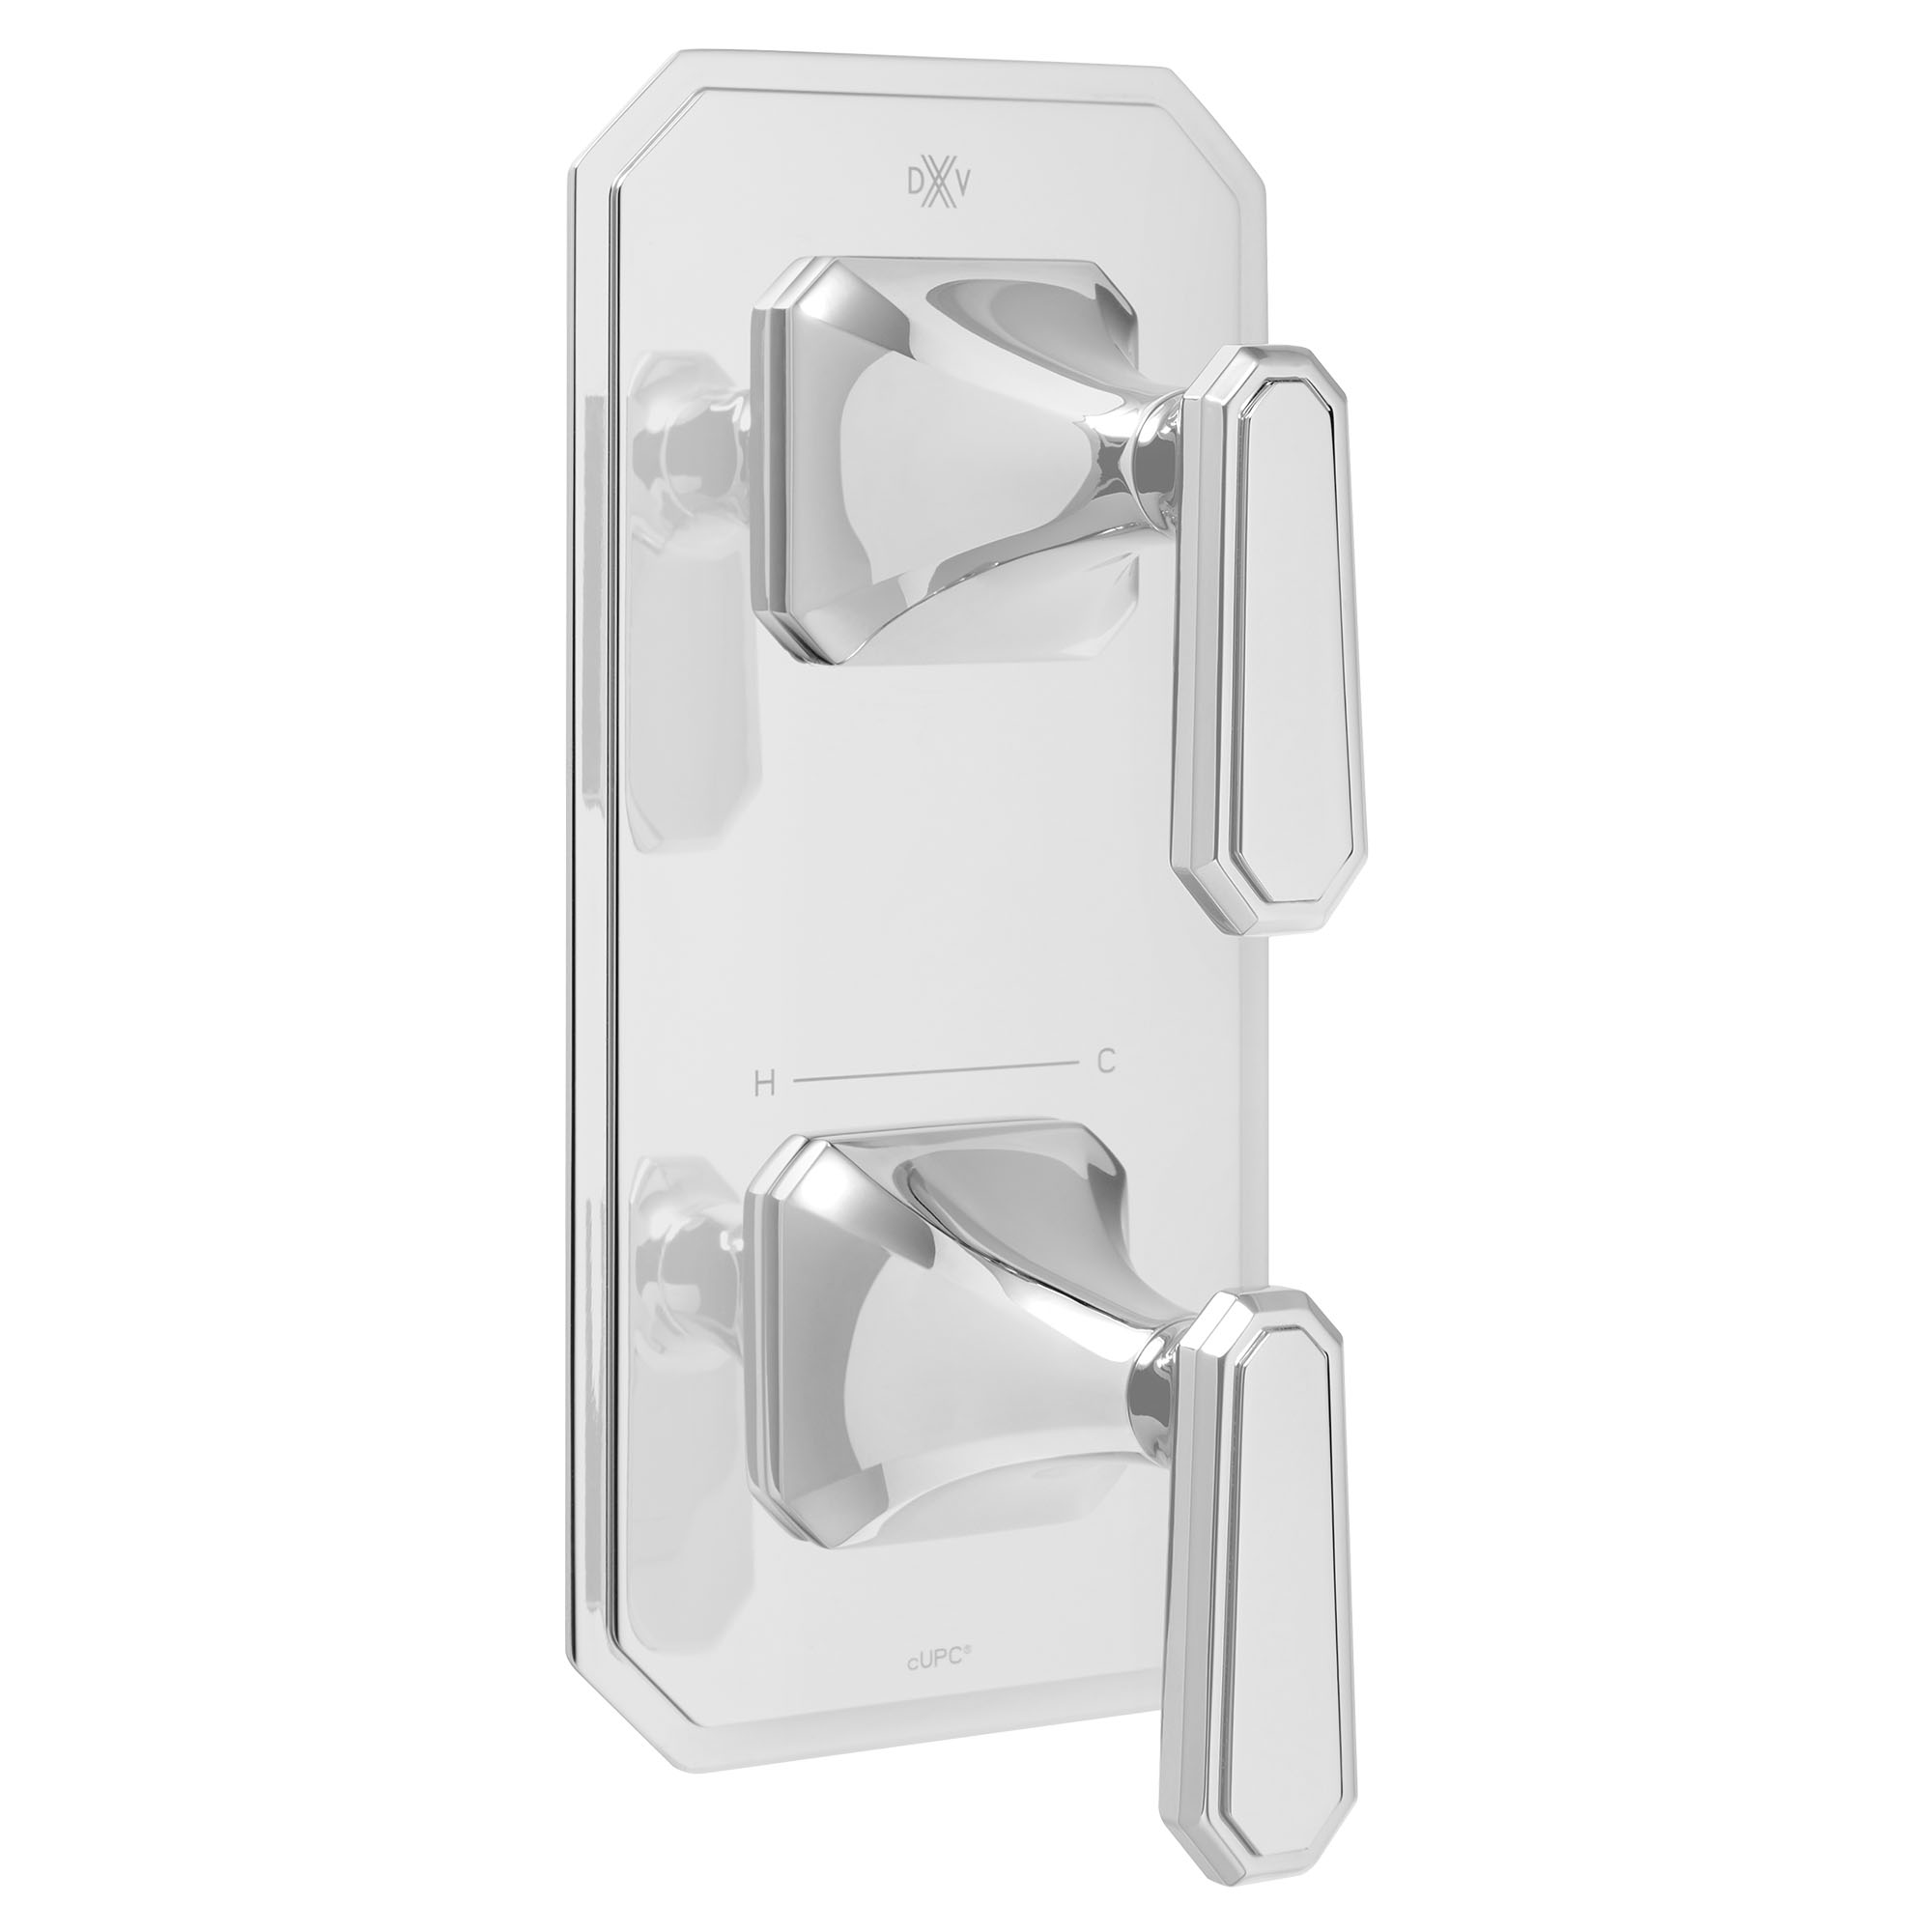 Belshire Two-Handle Thermostatic Valve Trim with Lever Handles